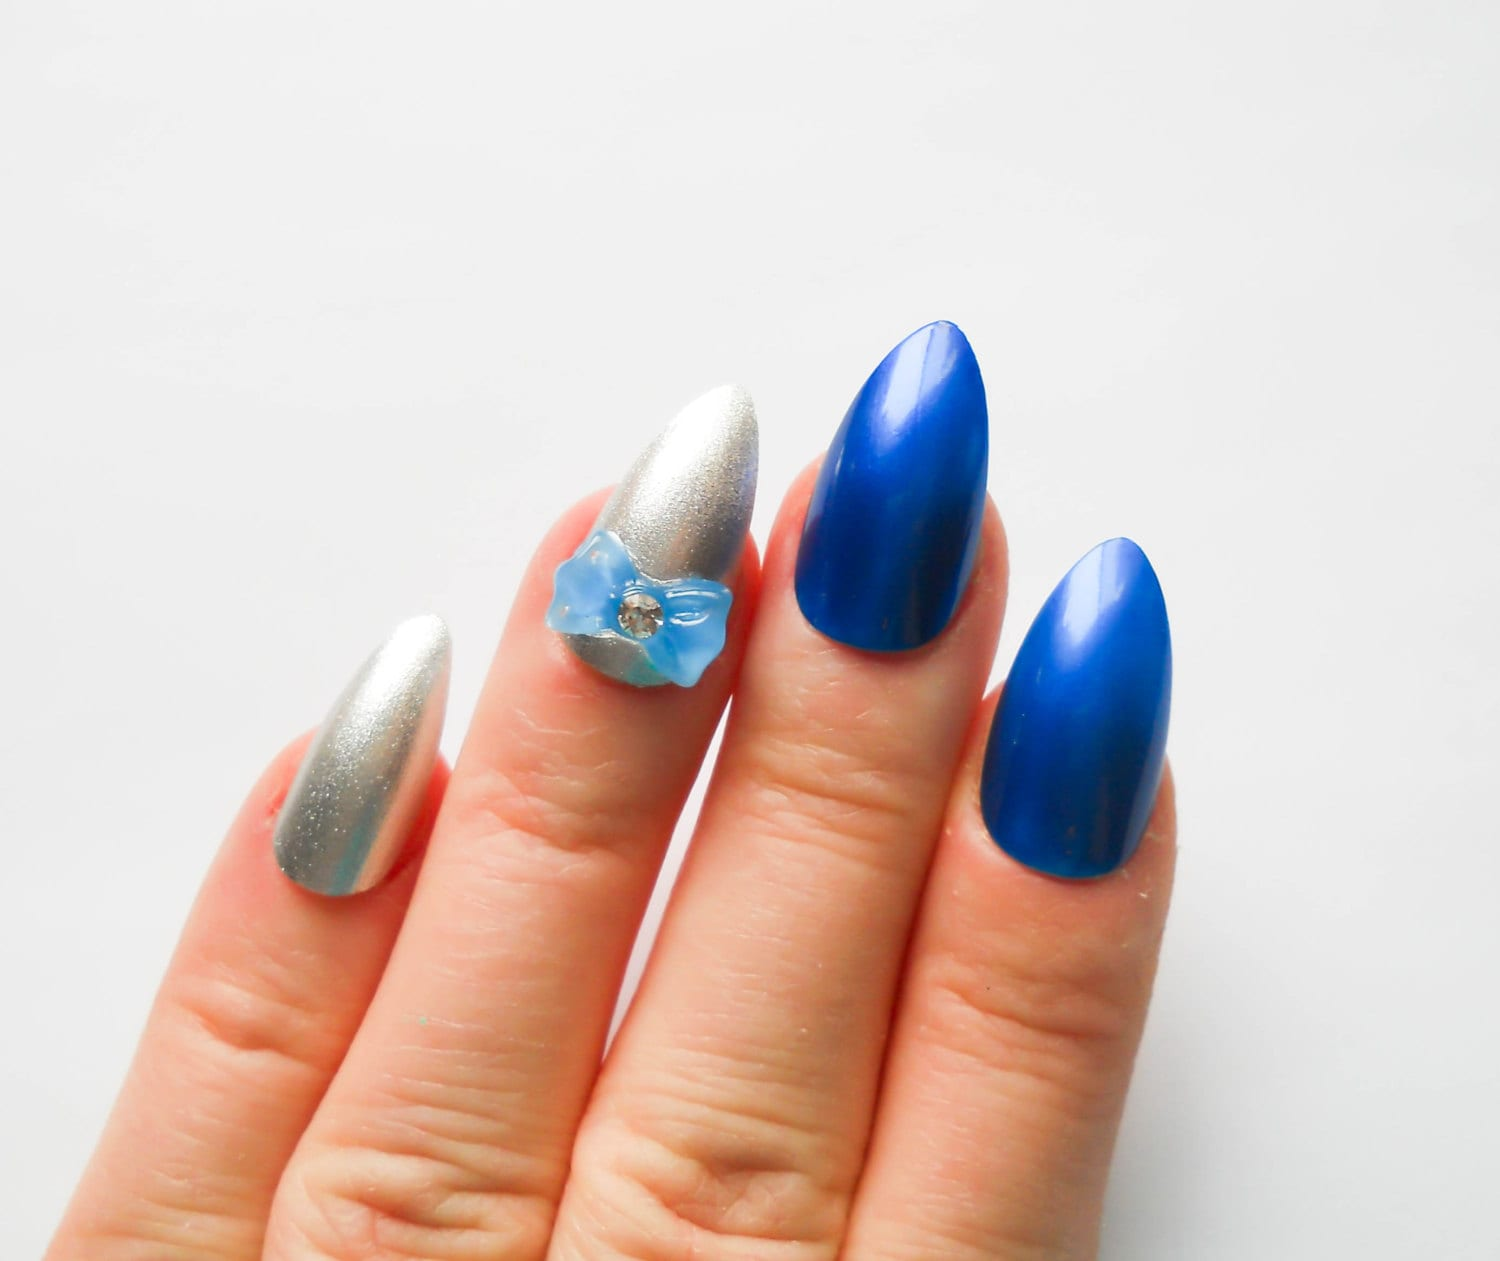 Silver & Blue Nails / Fake Nails / Stiletto Nails / Press on